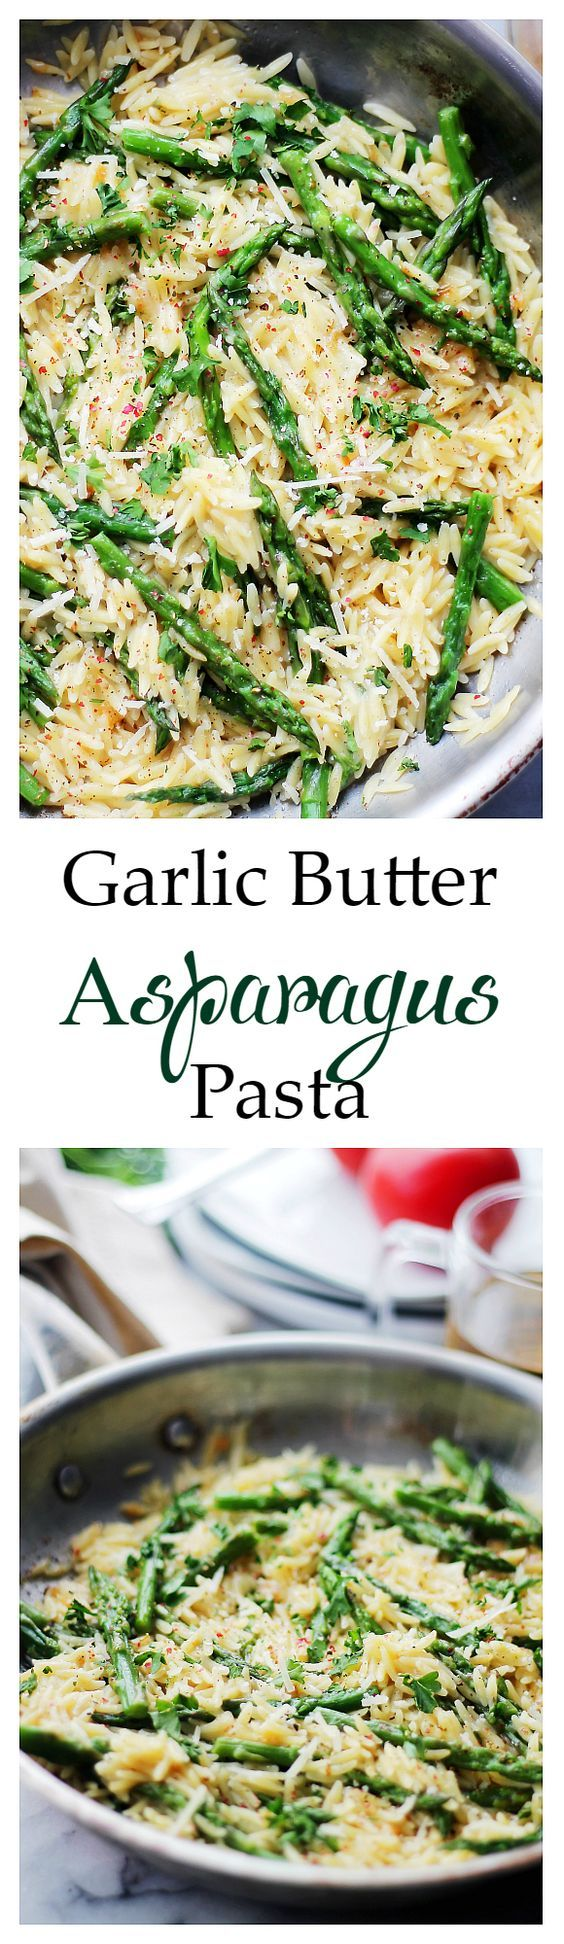 Garlic Butter Asparagus Pasta - Orzo Pasta and fresh Asparagus tossed in a garlic butter sauce and parmesan cheese. It's a 20-minute, garlicky and cheesy pasta dinner!